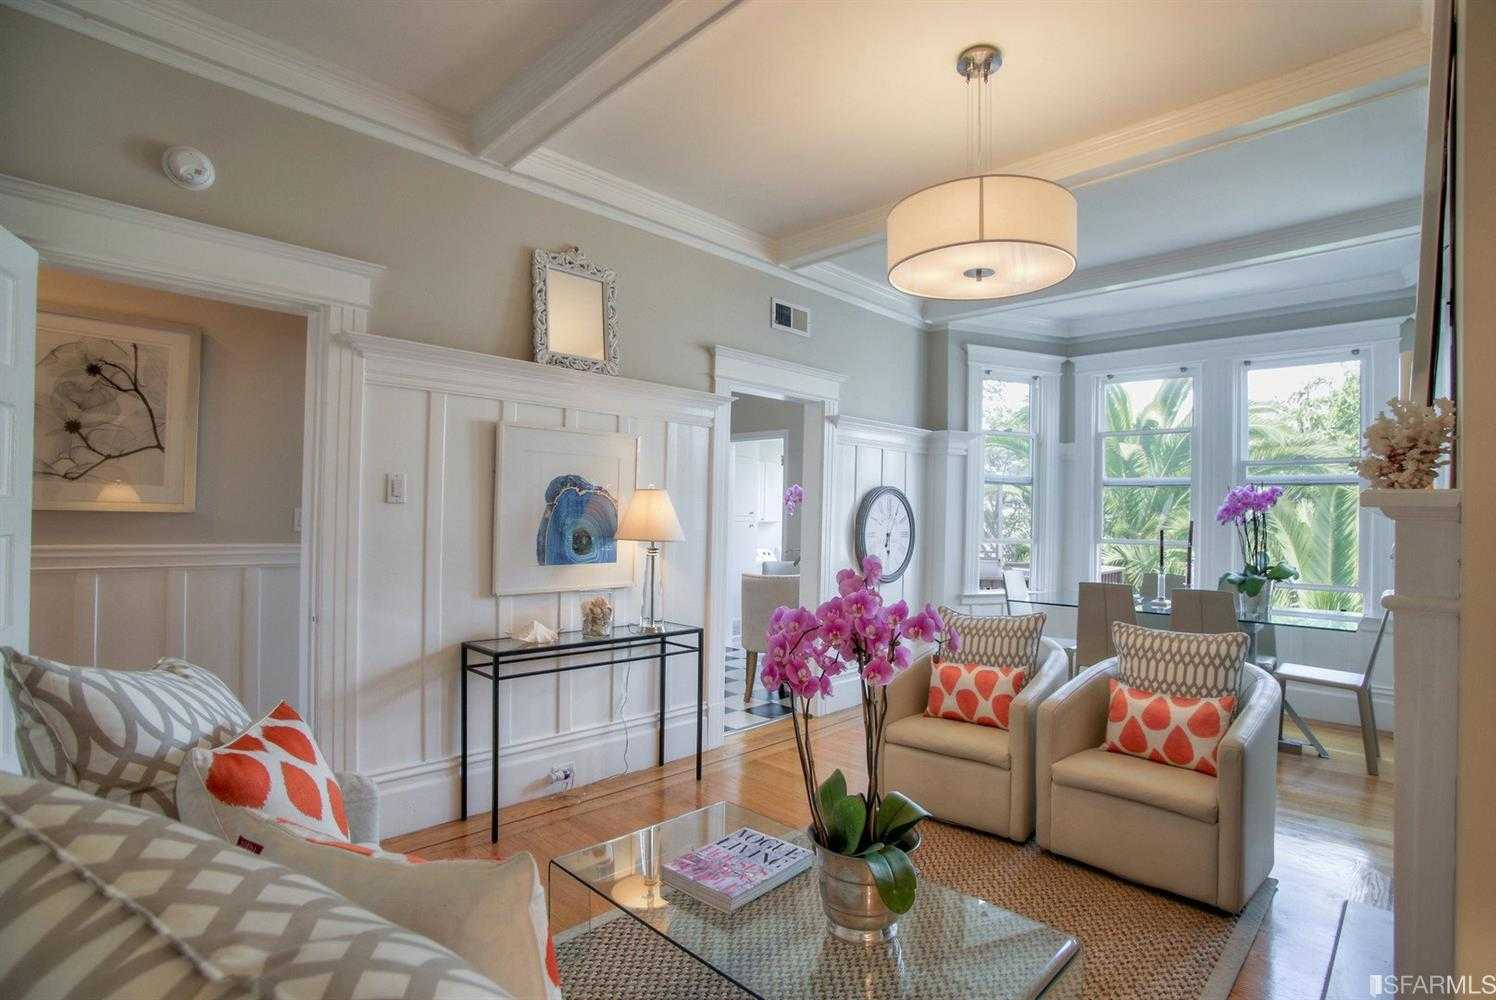 $1,798,000 - 3Br/1Ba -  for Sale in San Francisco